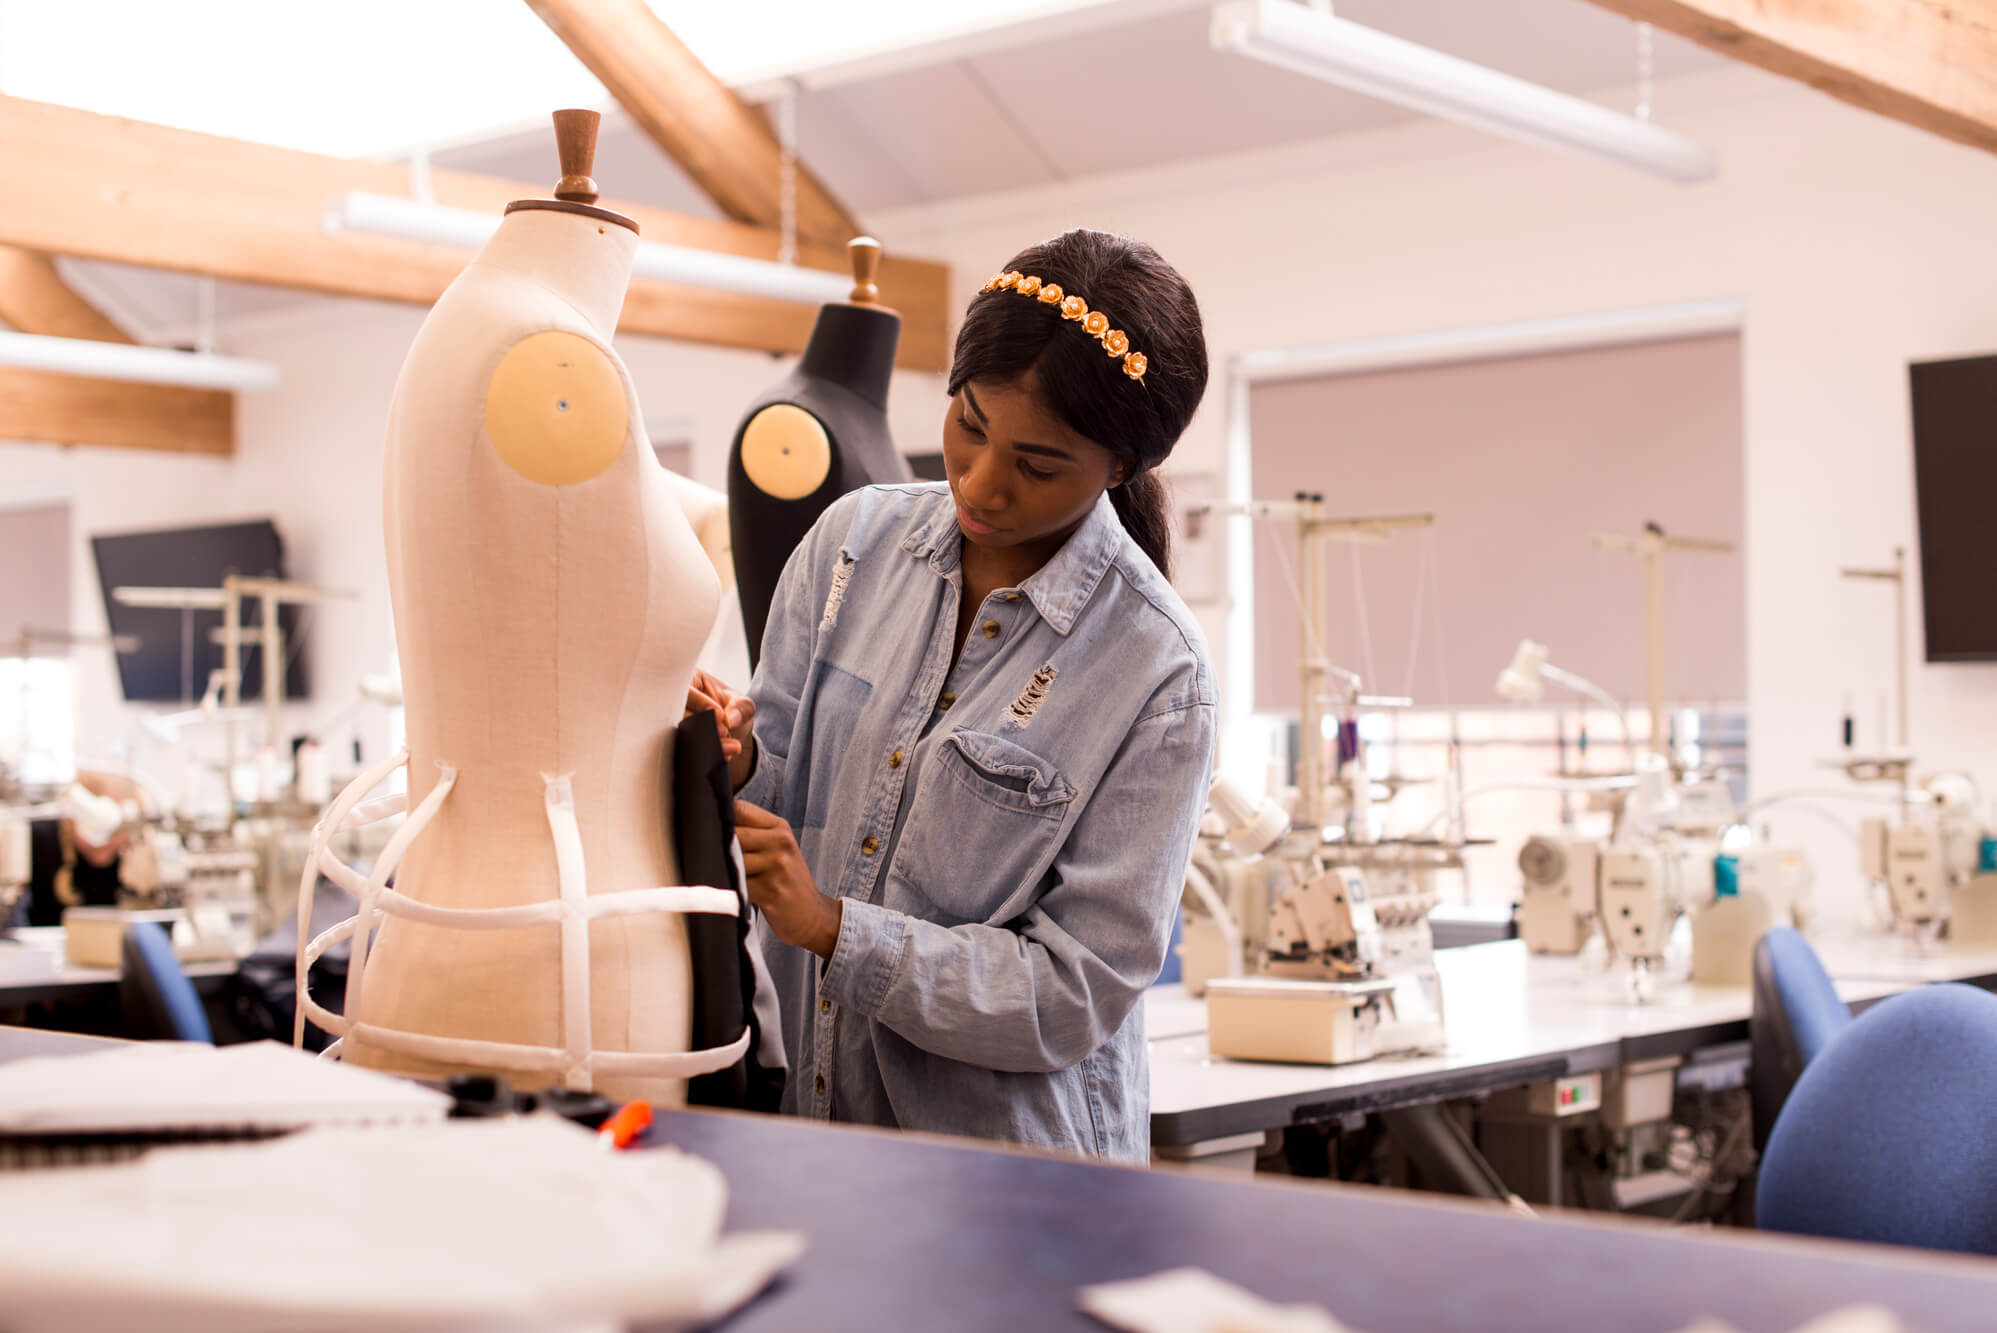 A female pins her clothing design to a mannequin